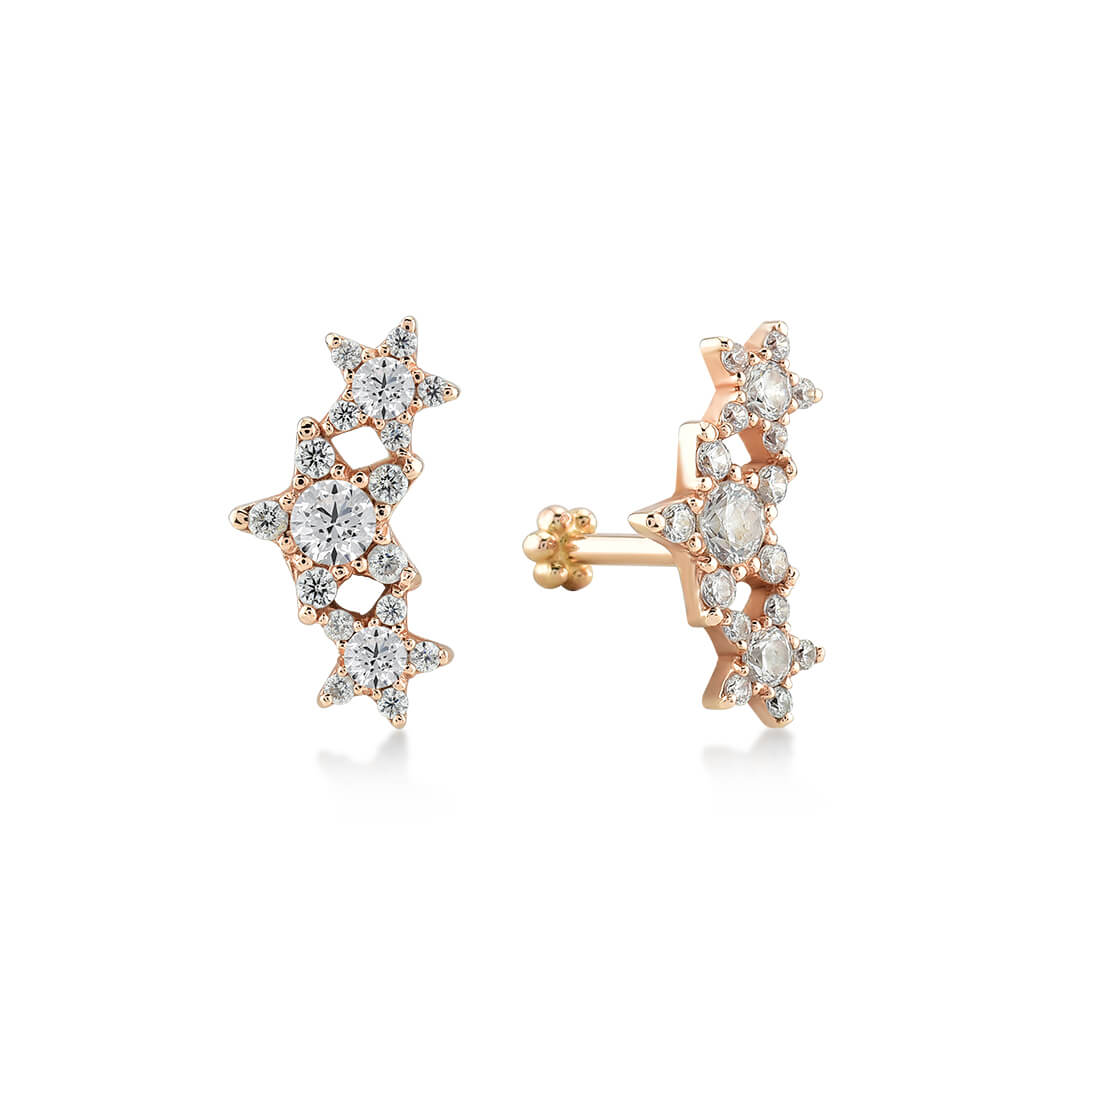 14K GOLD STARRUCKS CARTOON EARRING